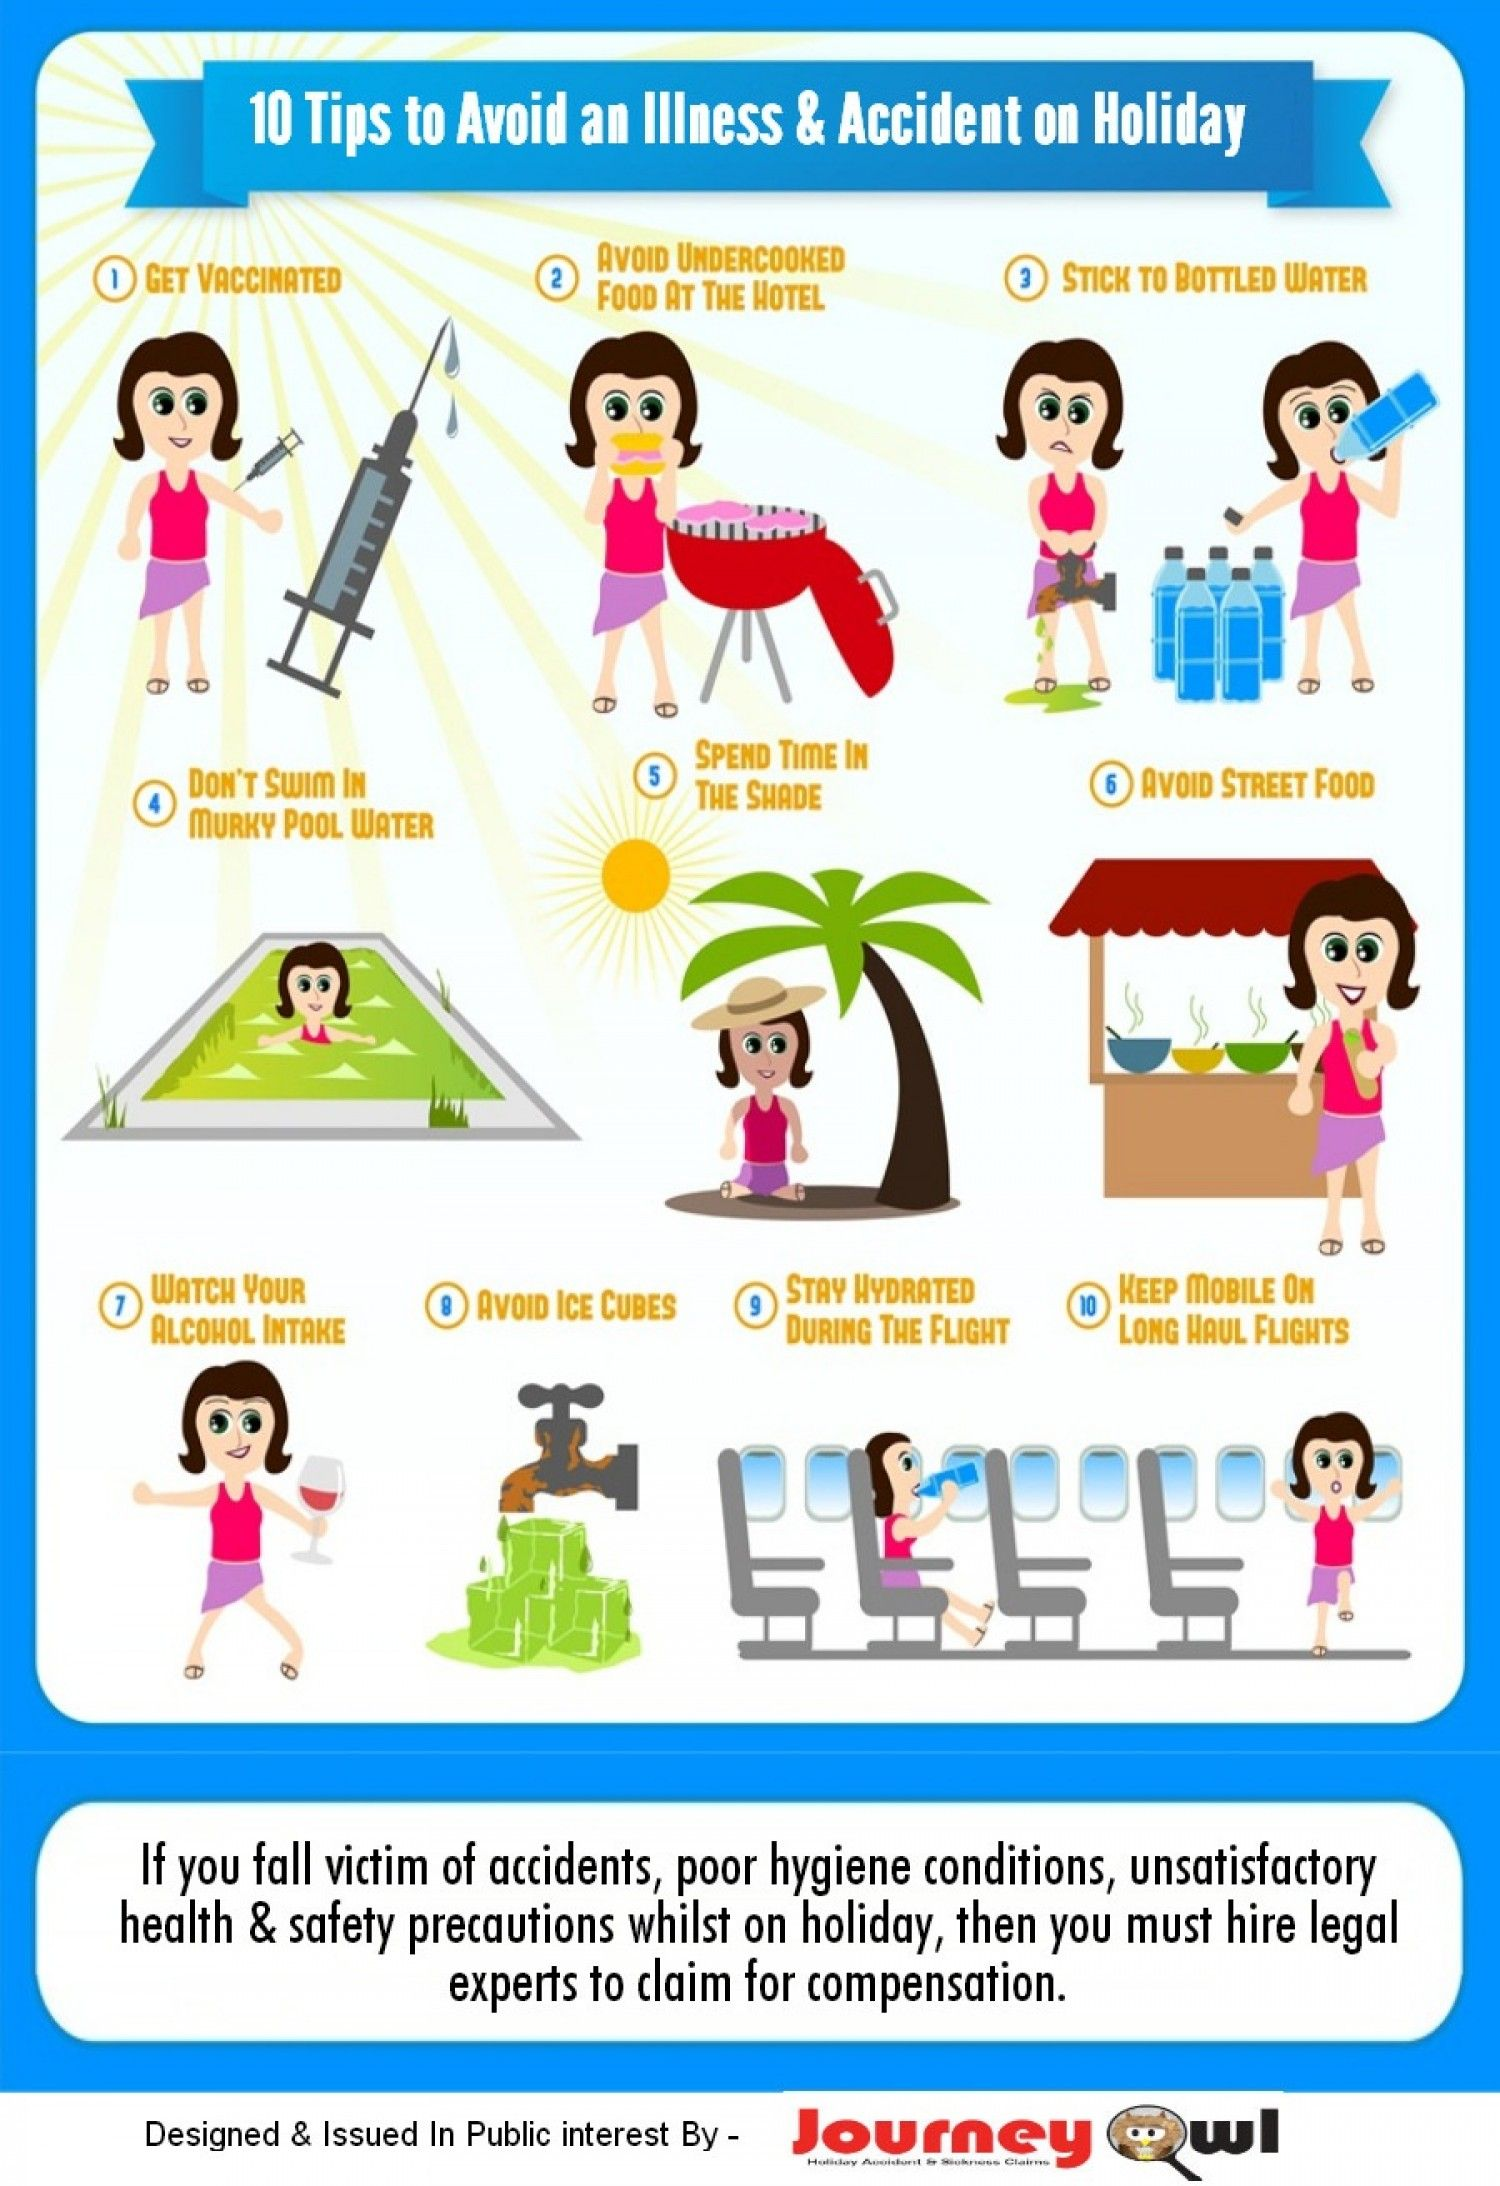 Nobody wants to be sick on vacation! Here are 10 Tips to